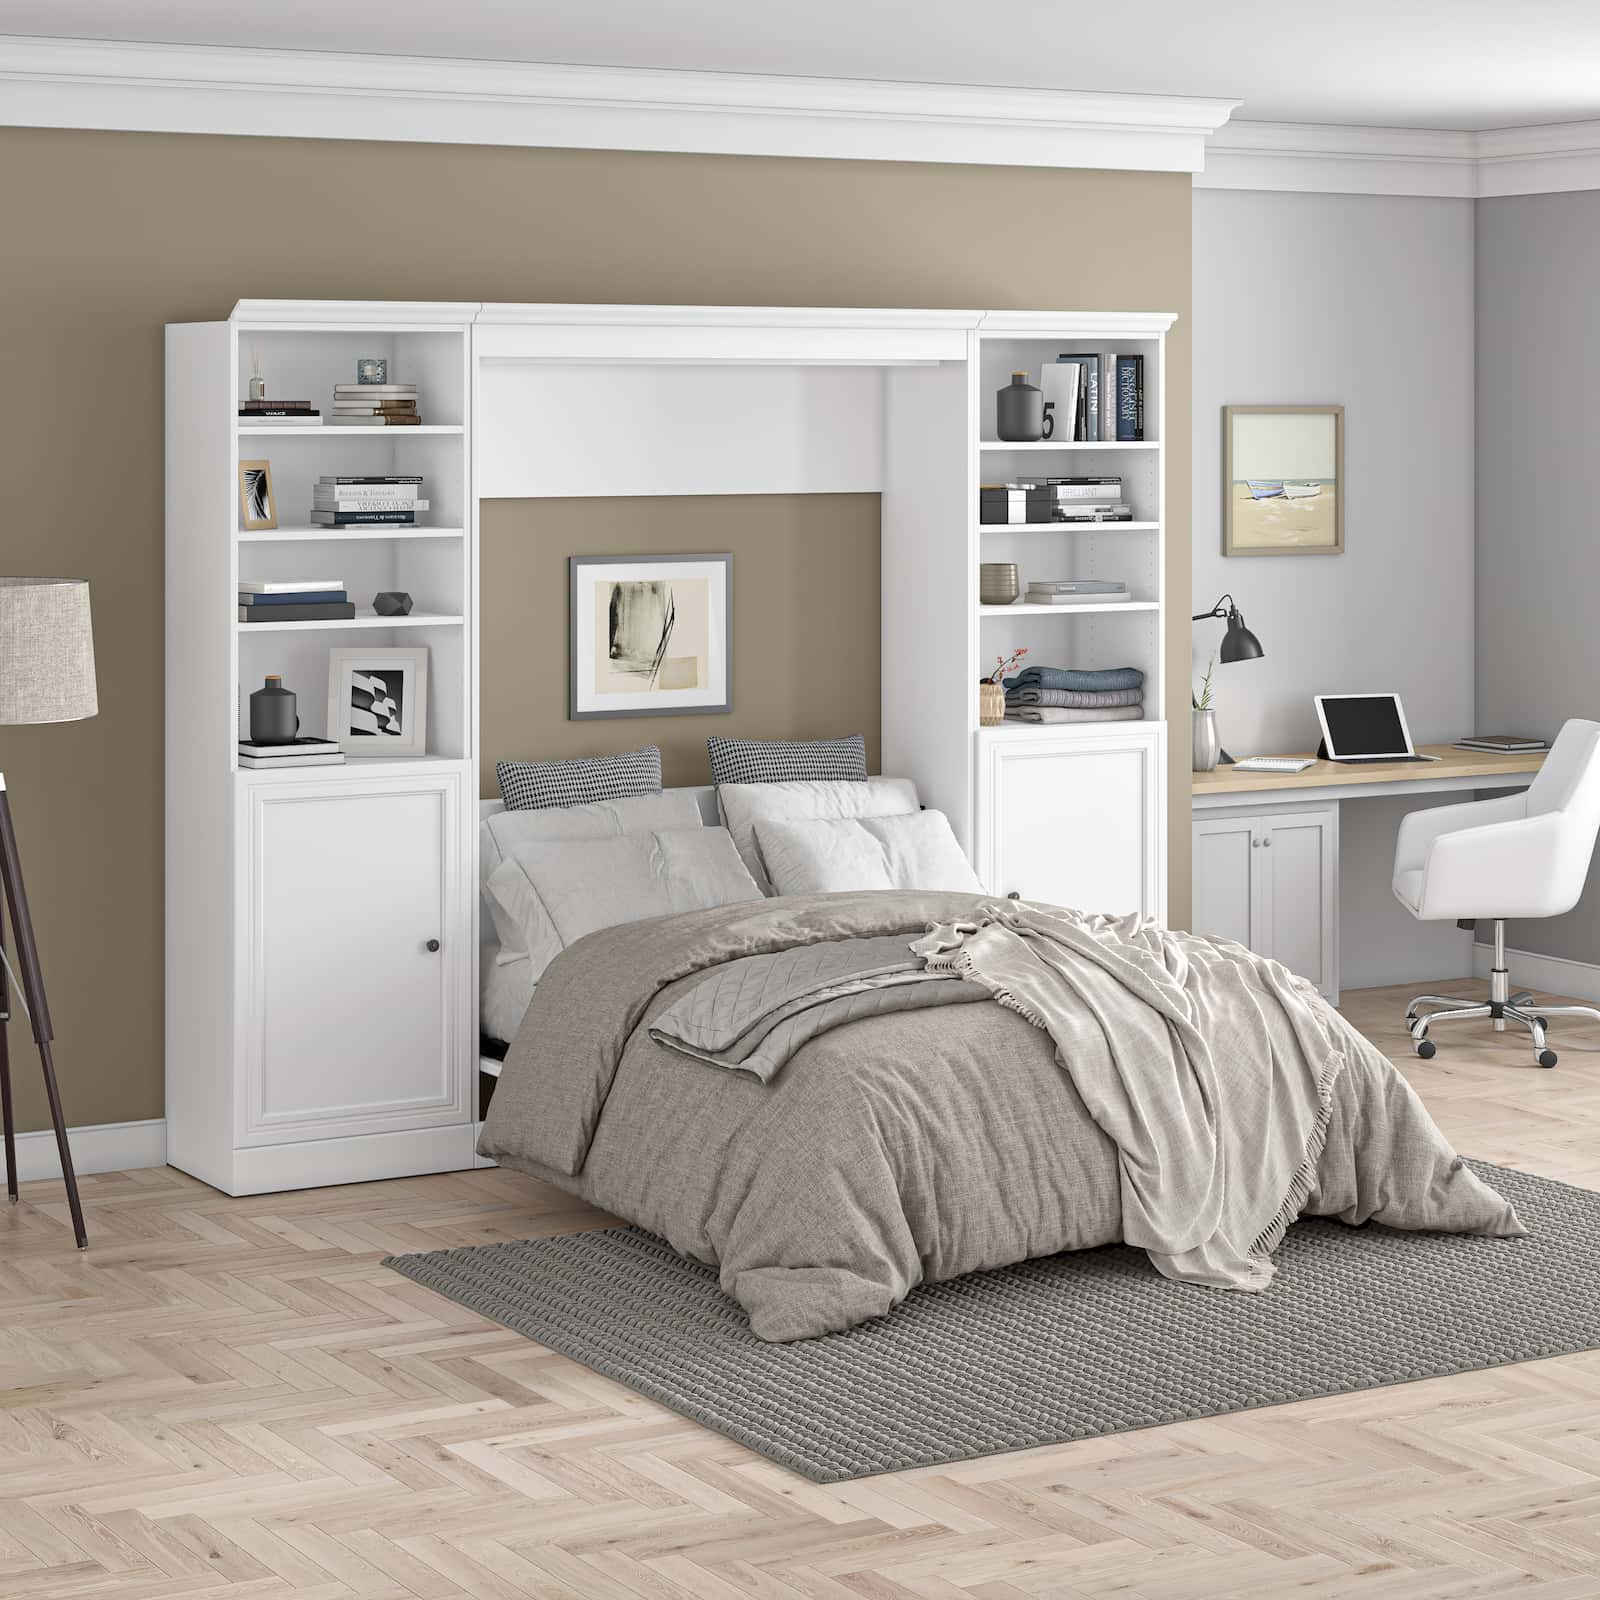 white murphy bed with side shelving units and small office furniture